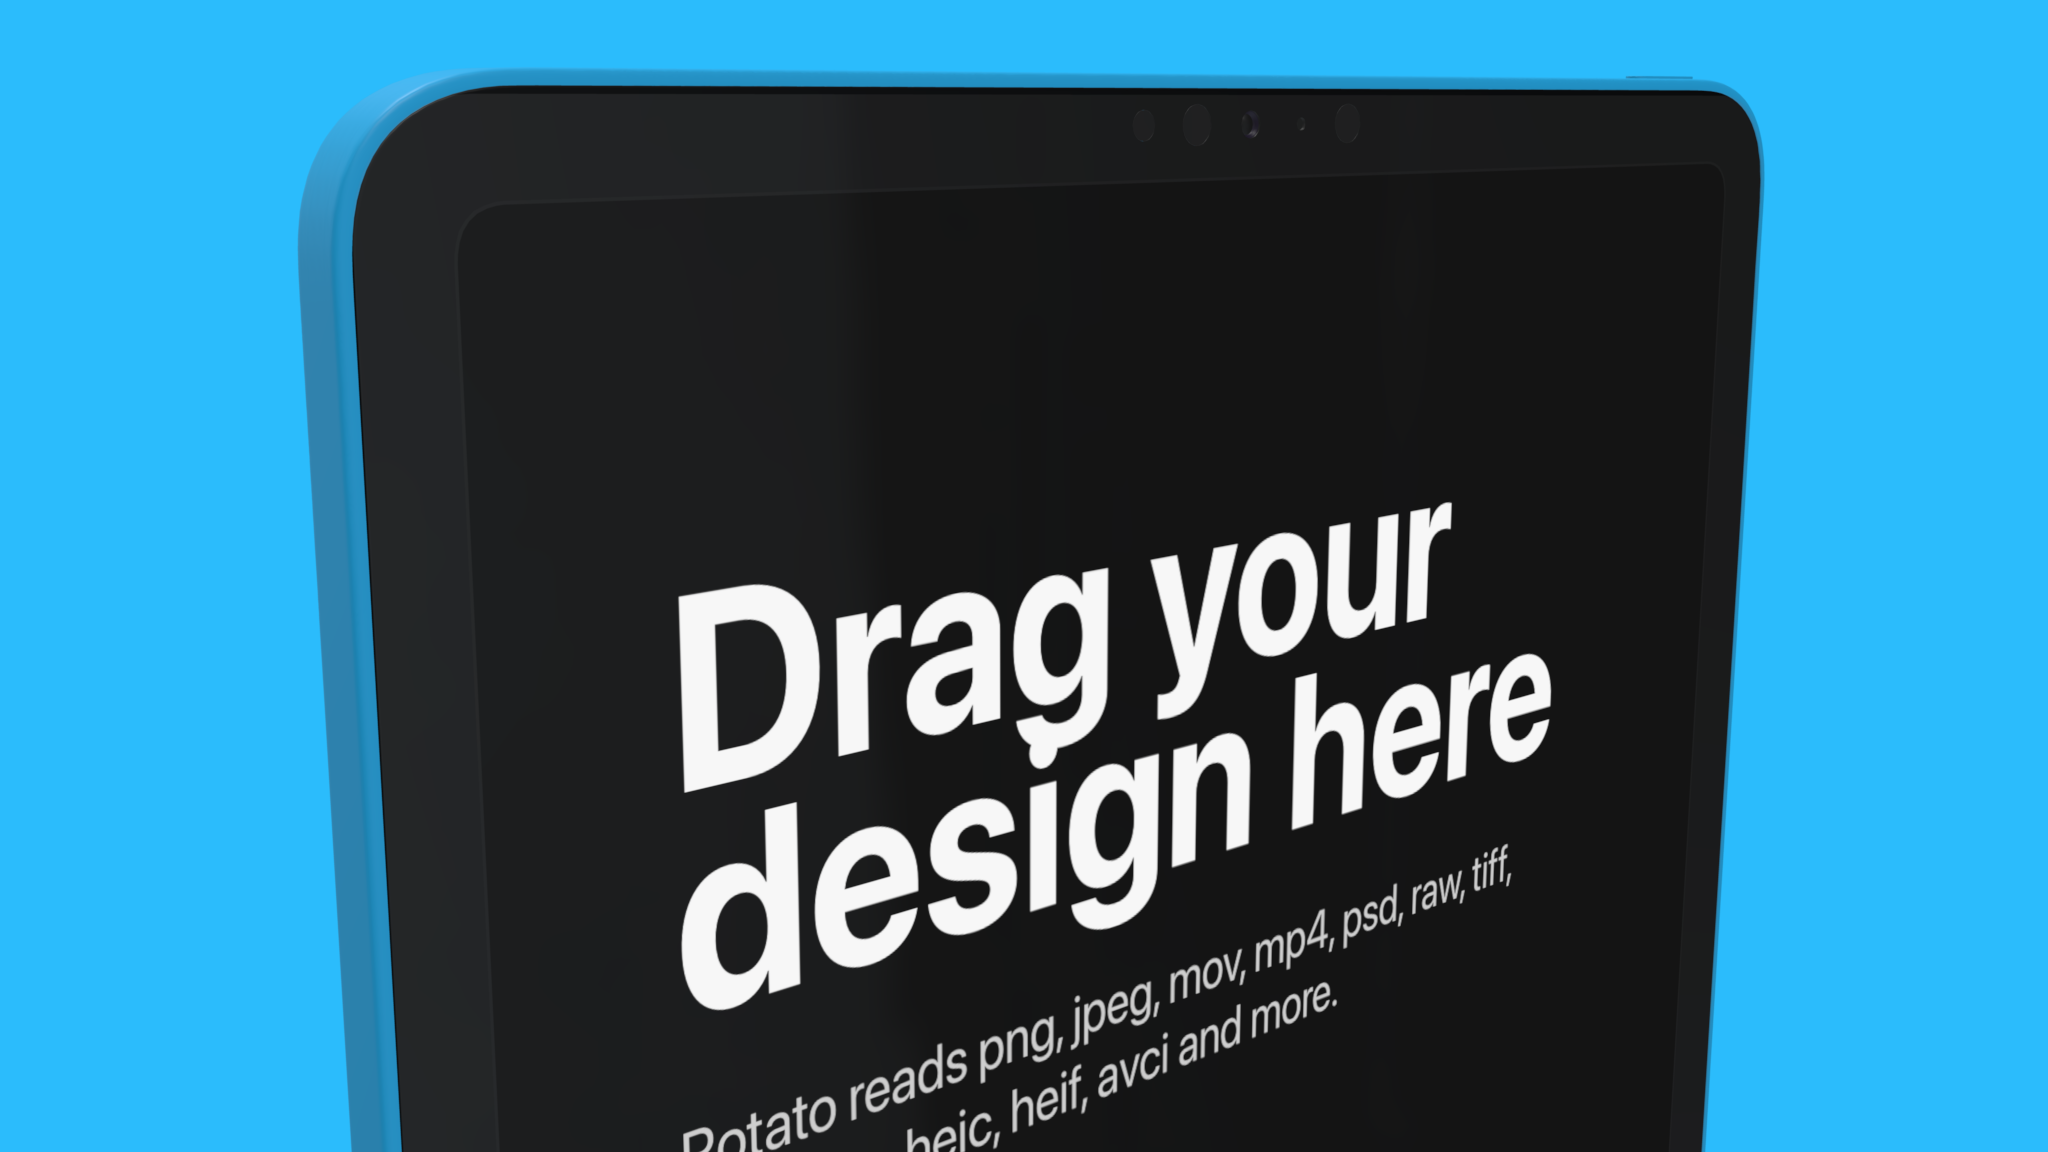 iPad Mockup, rotated, on blue background